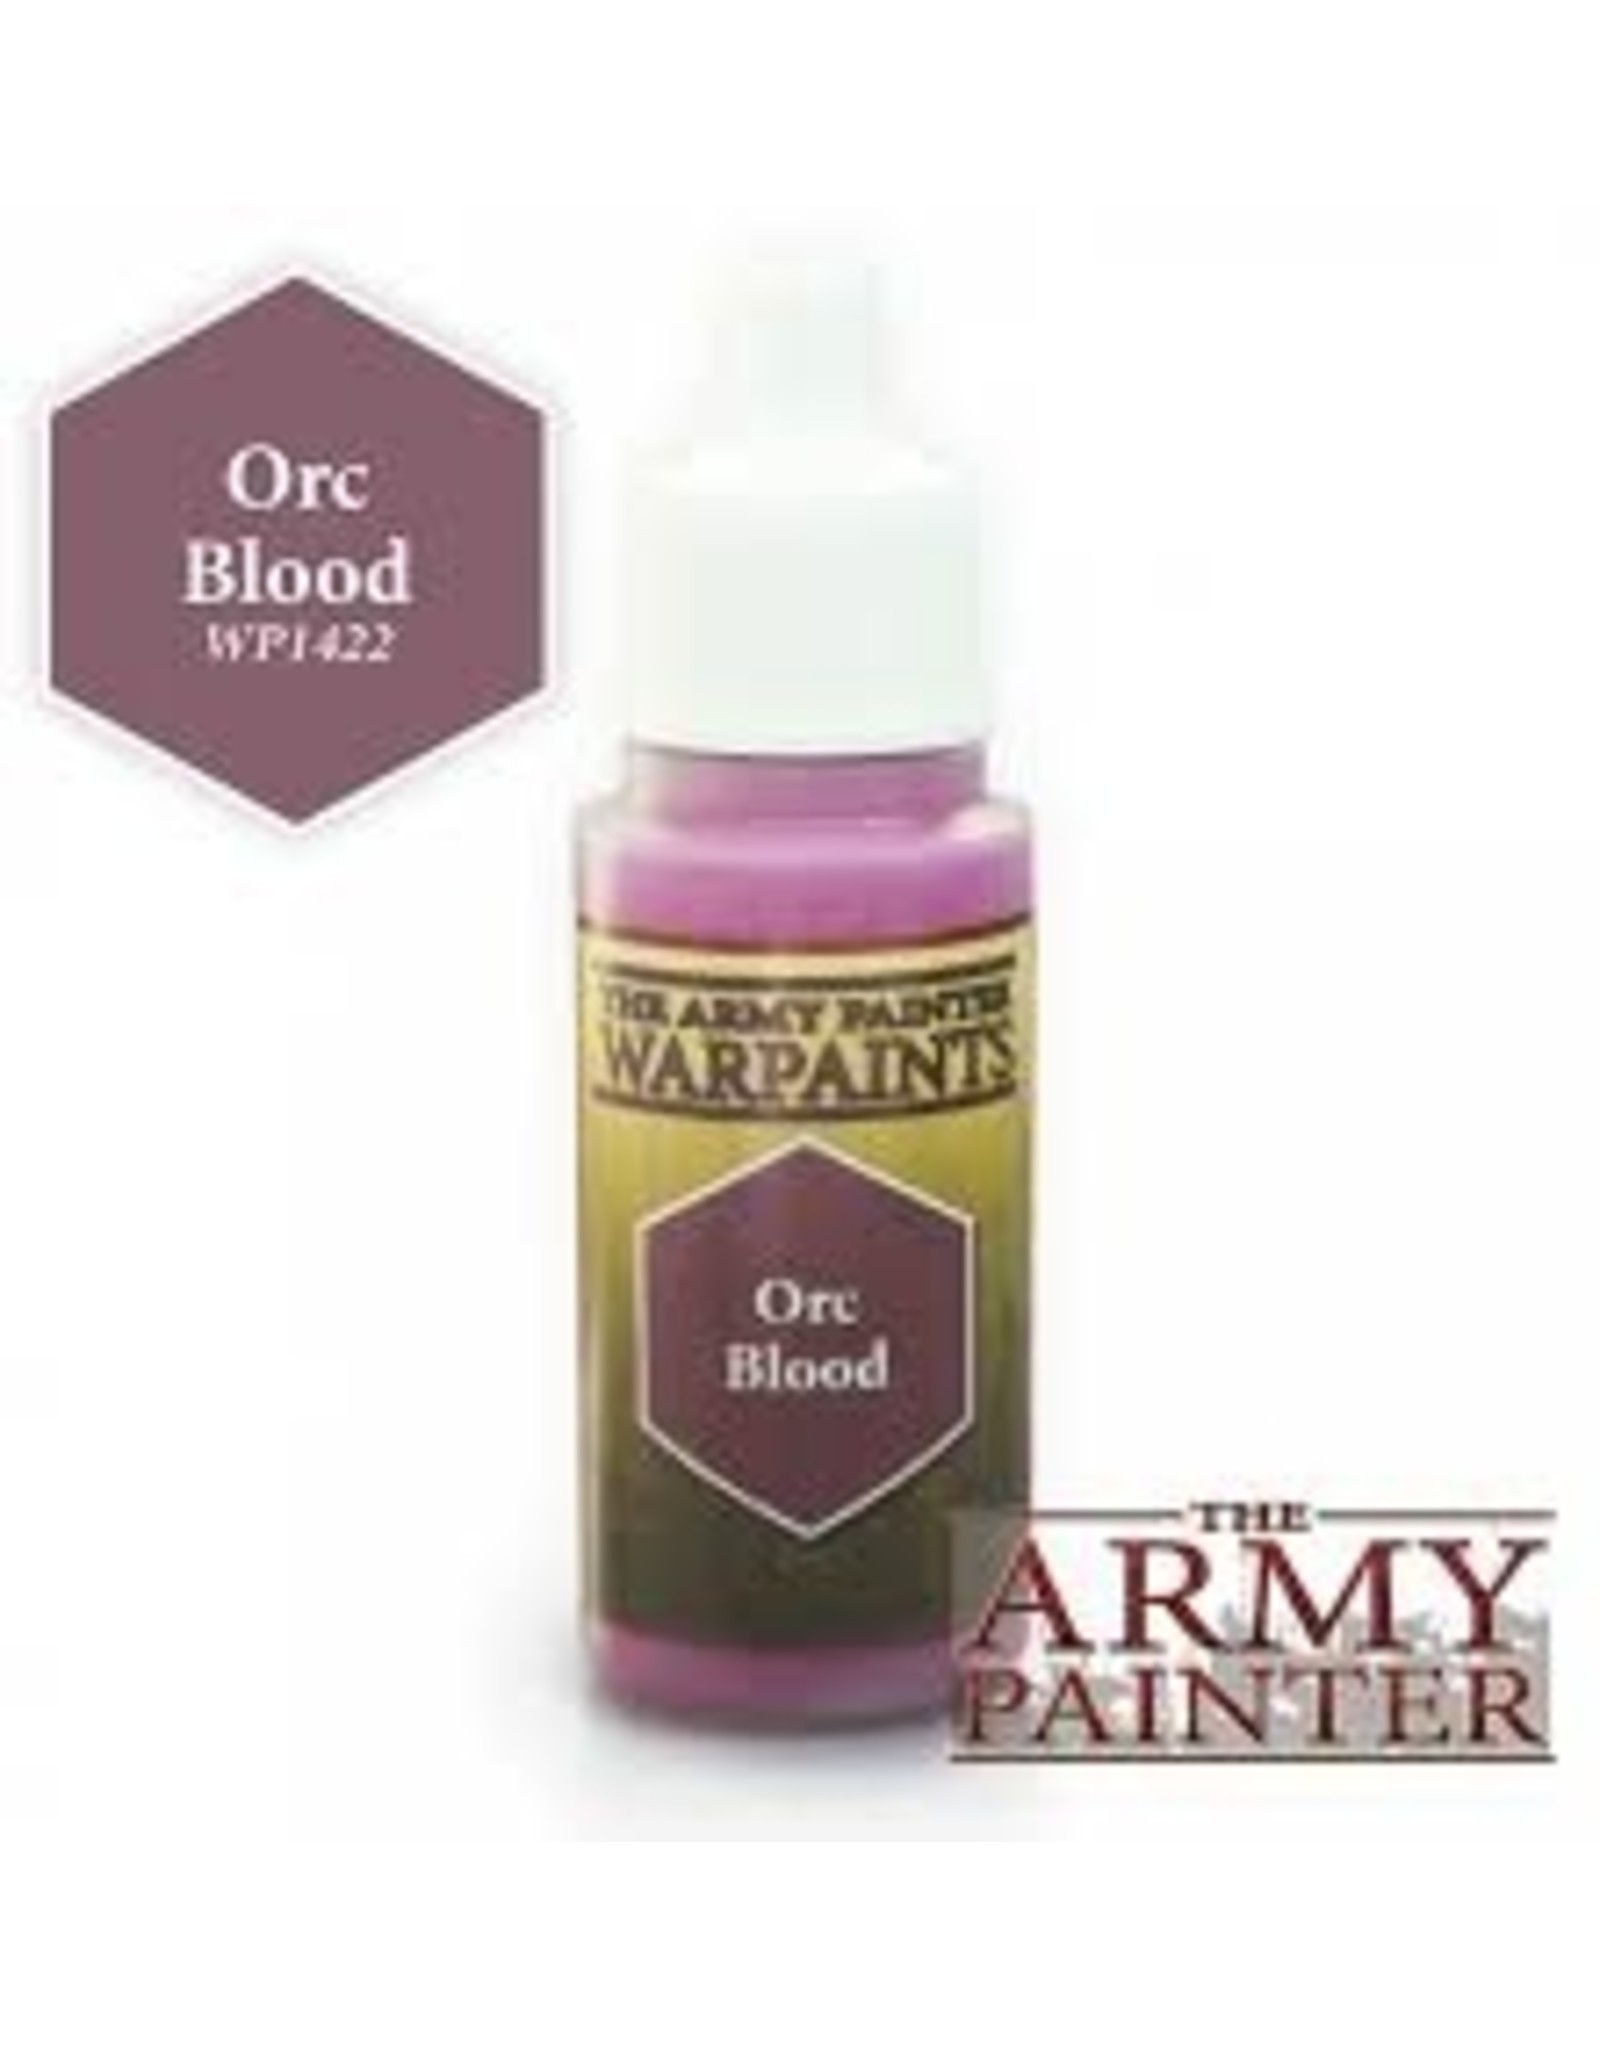 Army Painter Army Painter: Orc Blood